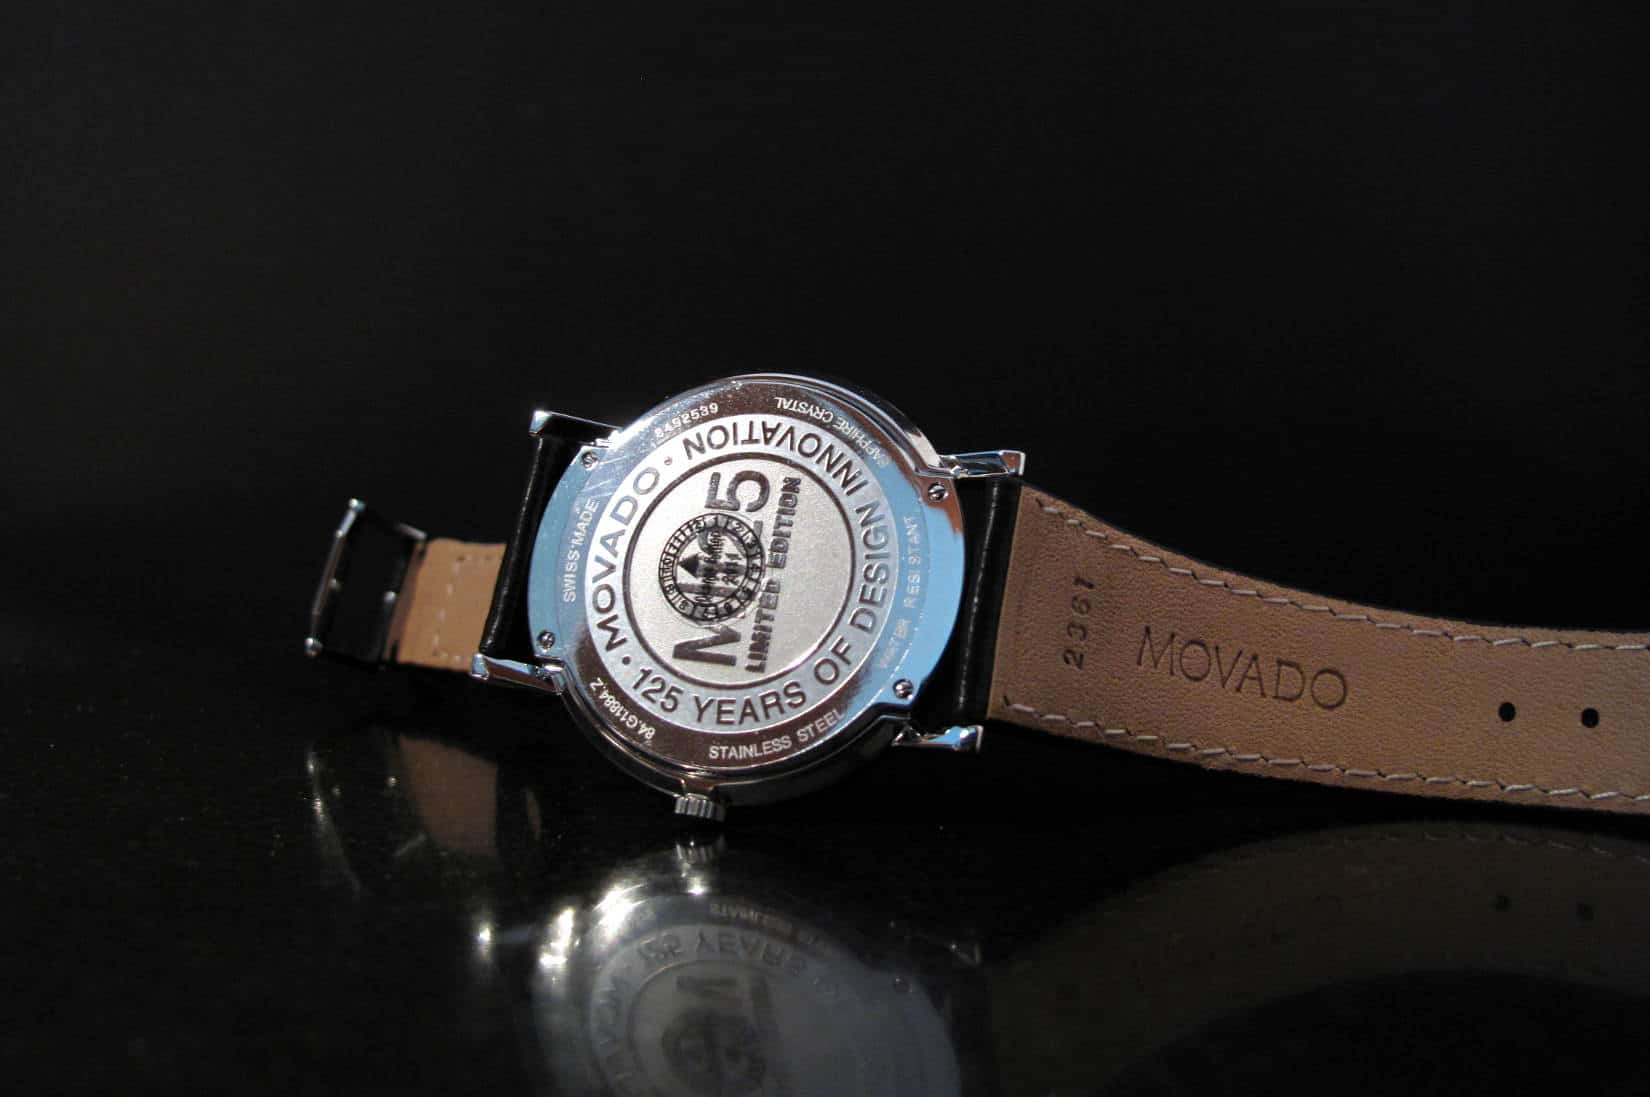 Movado M125 Hands – On Review